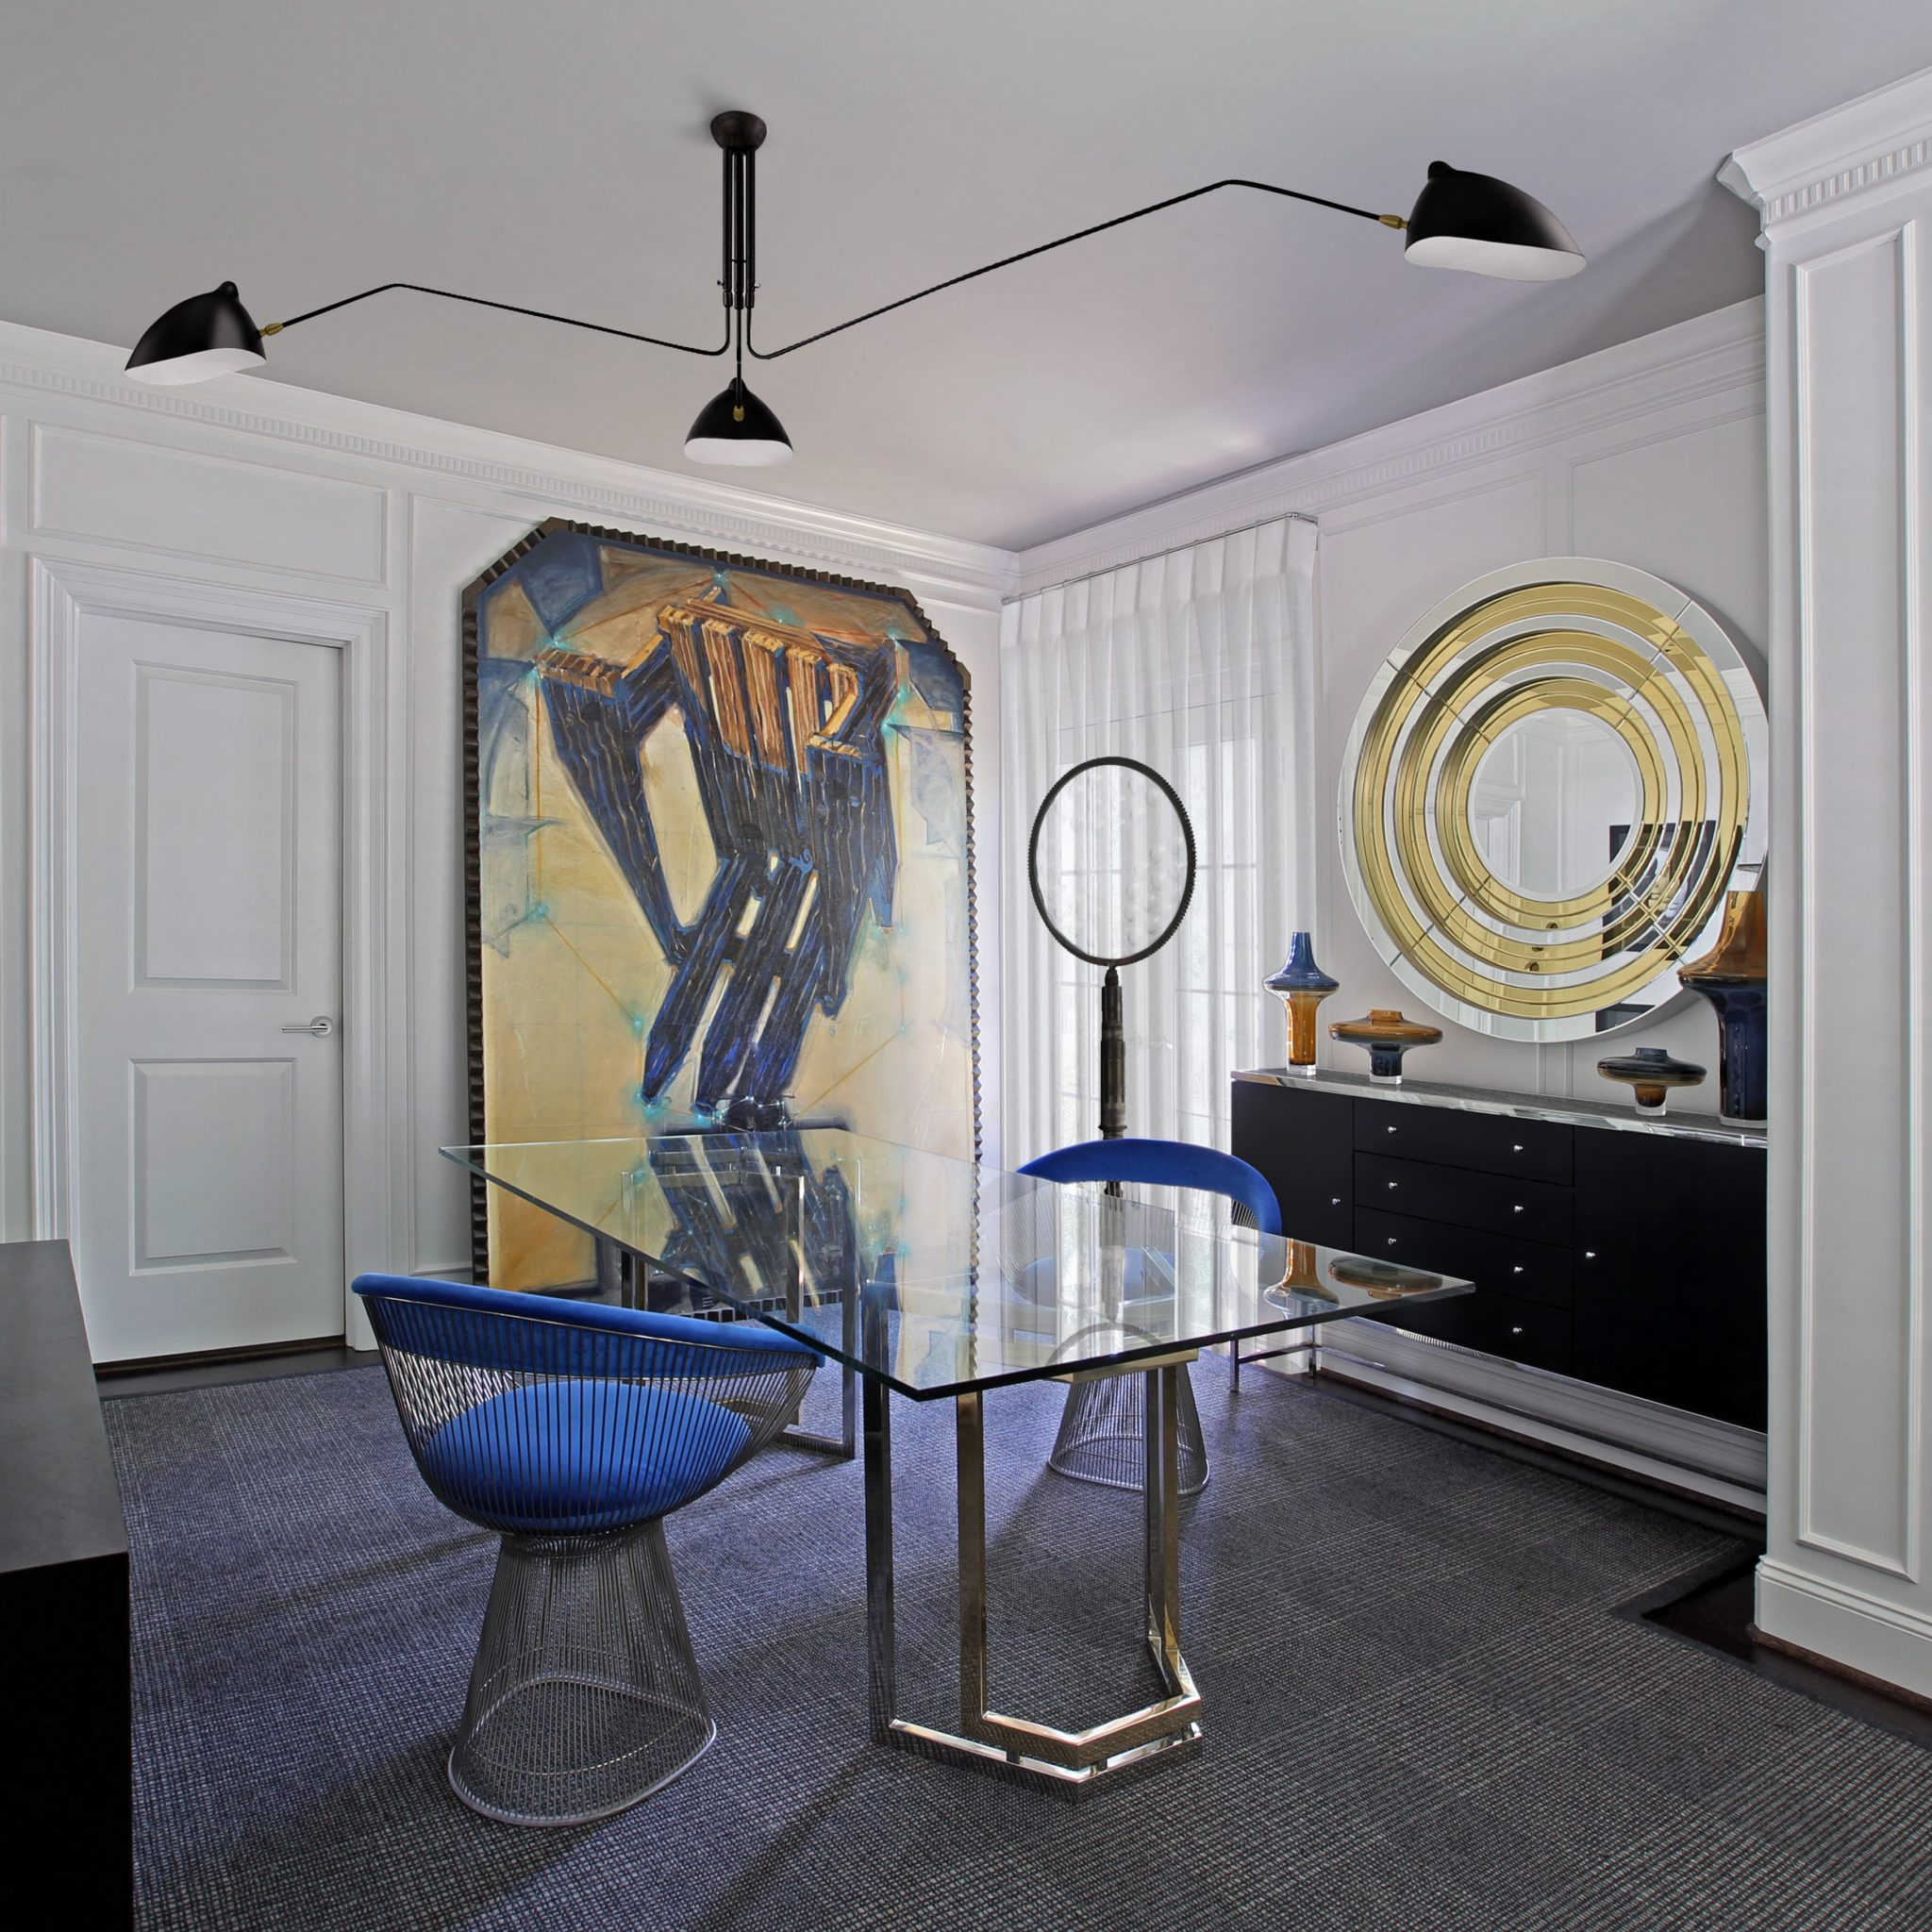 Oversize art and vintage mix of furniture and art in this home office by Benjamin Johnston Design